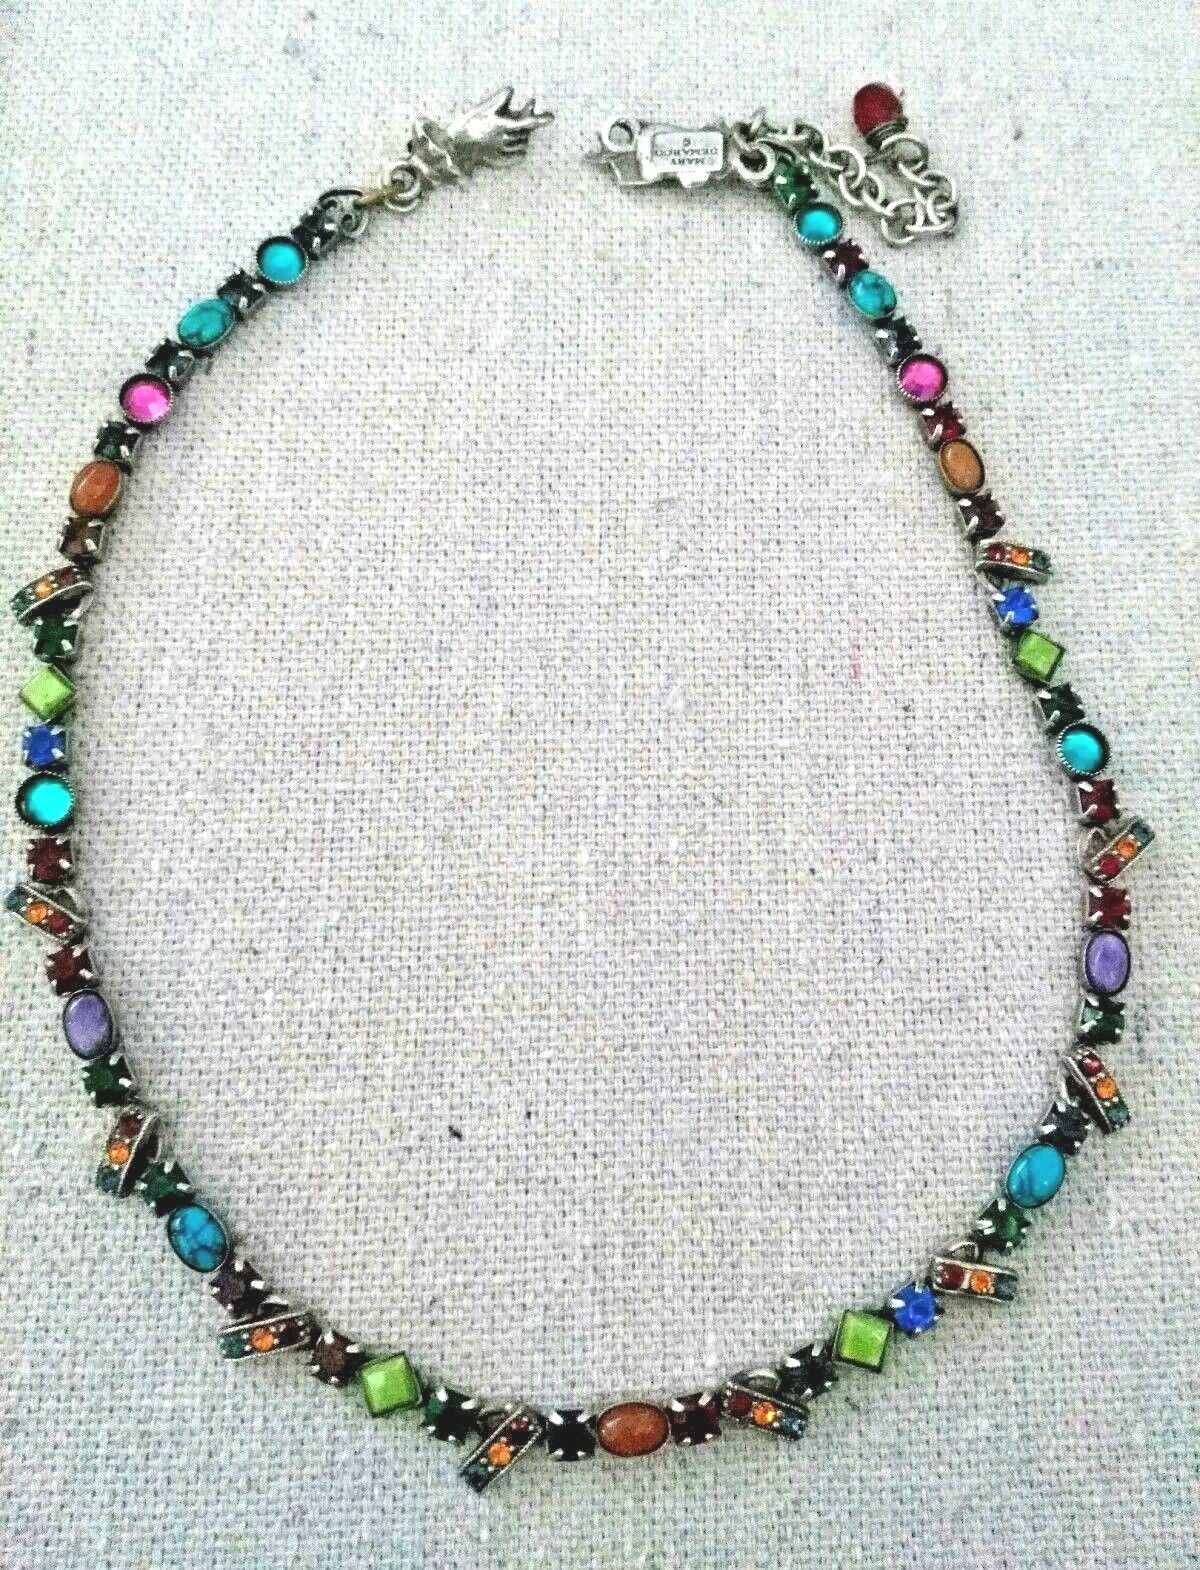 7db0ee68ee96 HIGH END - La Contessa Jewelry By MARY DEMARCO VINTAGE qqqmkm5152 ...